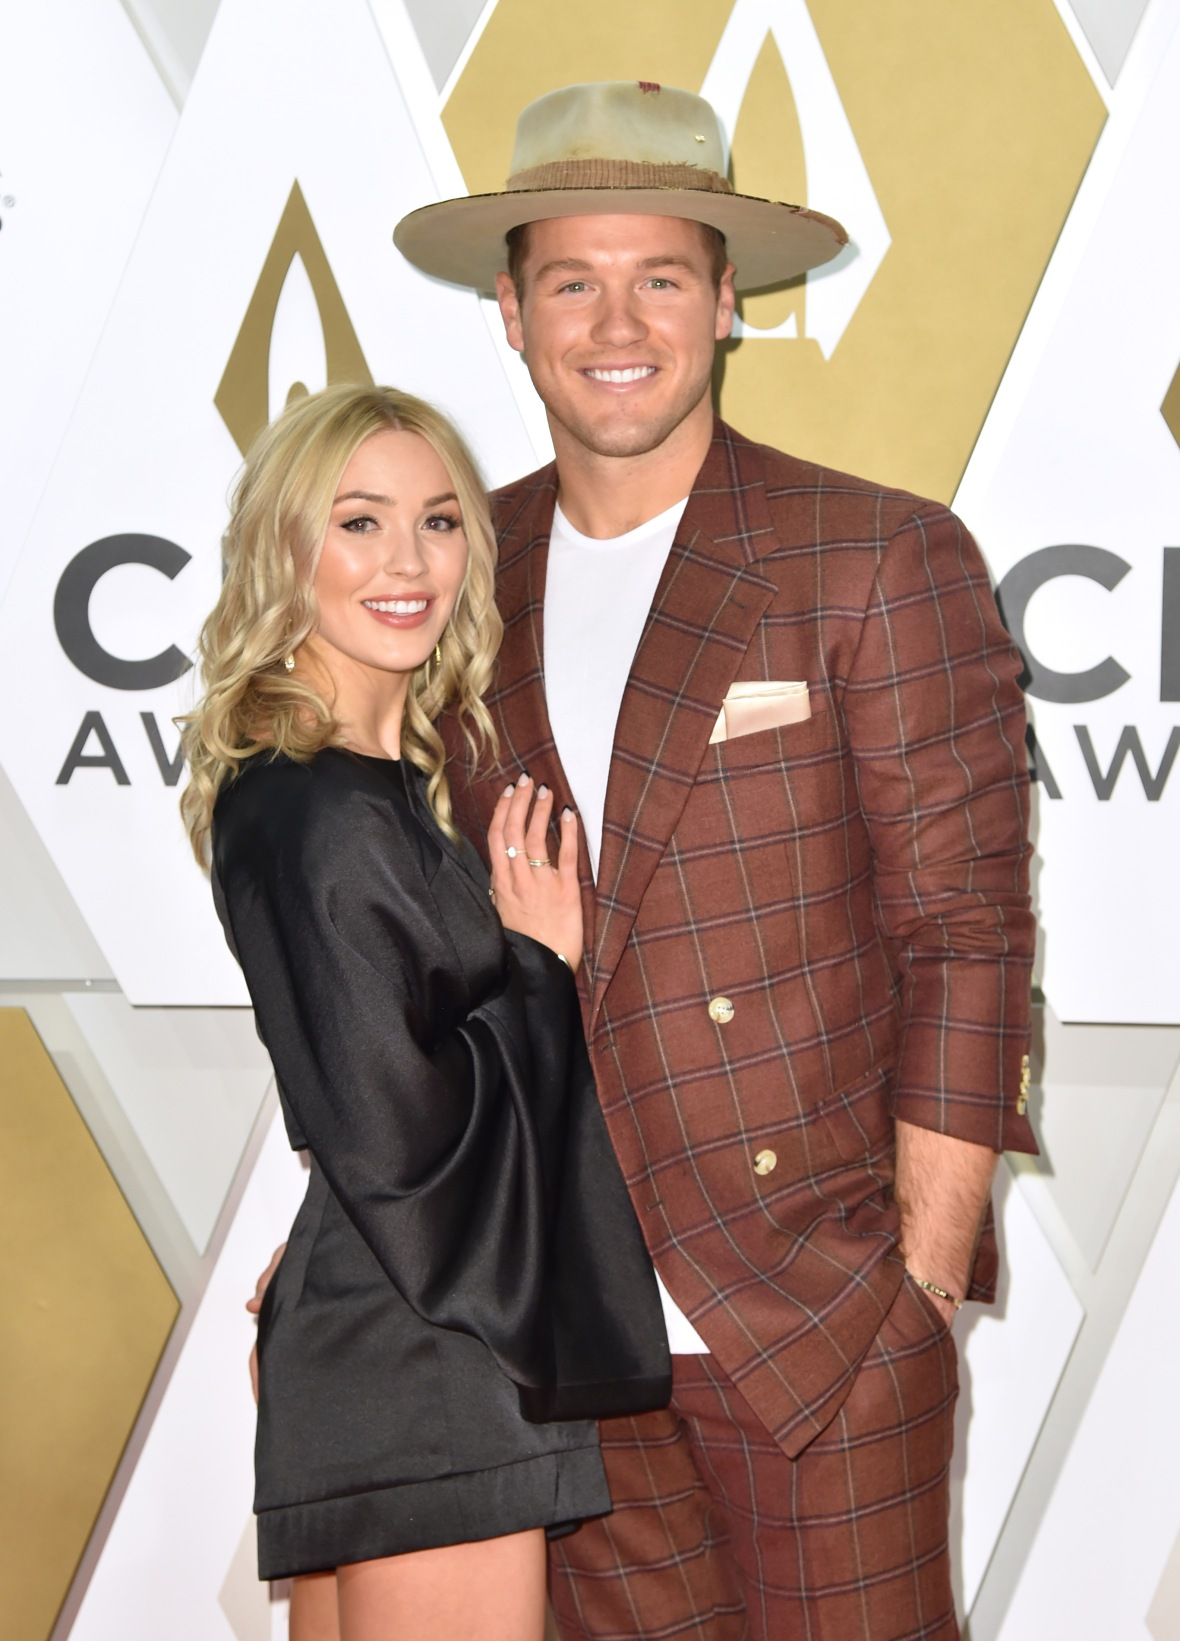 Colton Underwood and Cassie Randolph from Bachelor